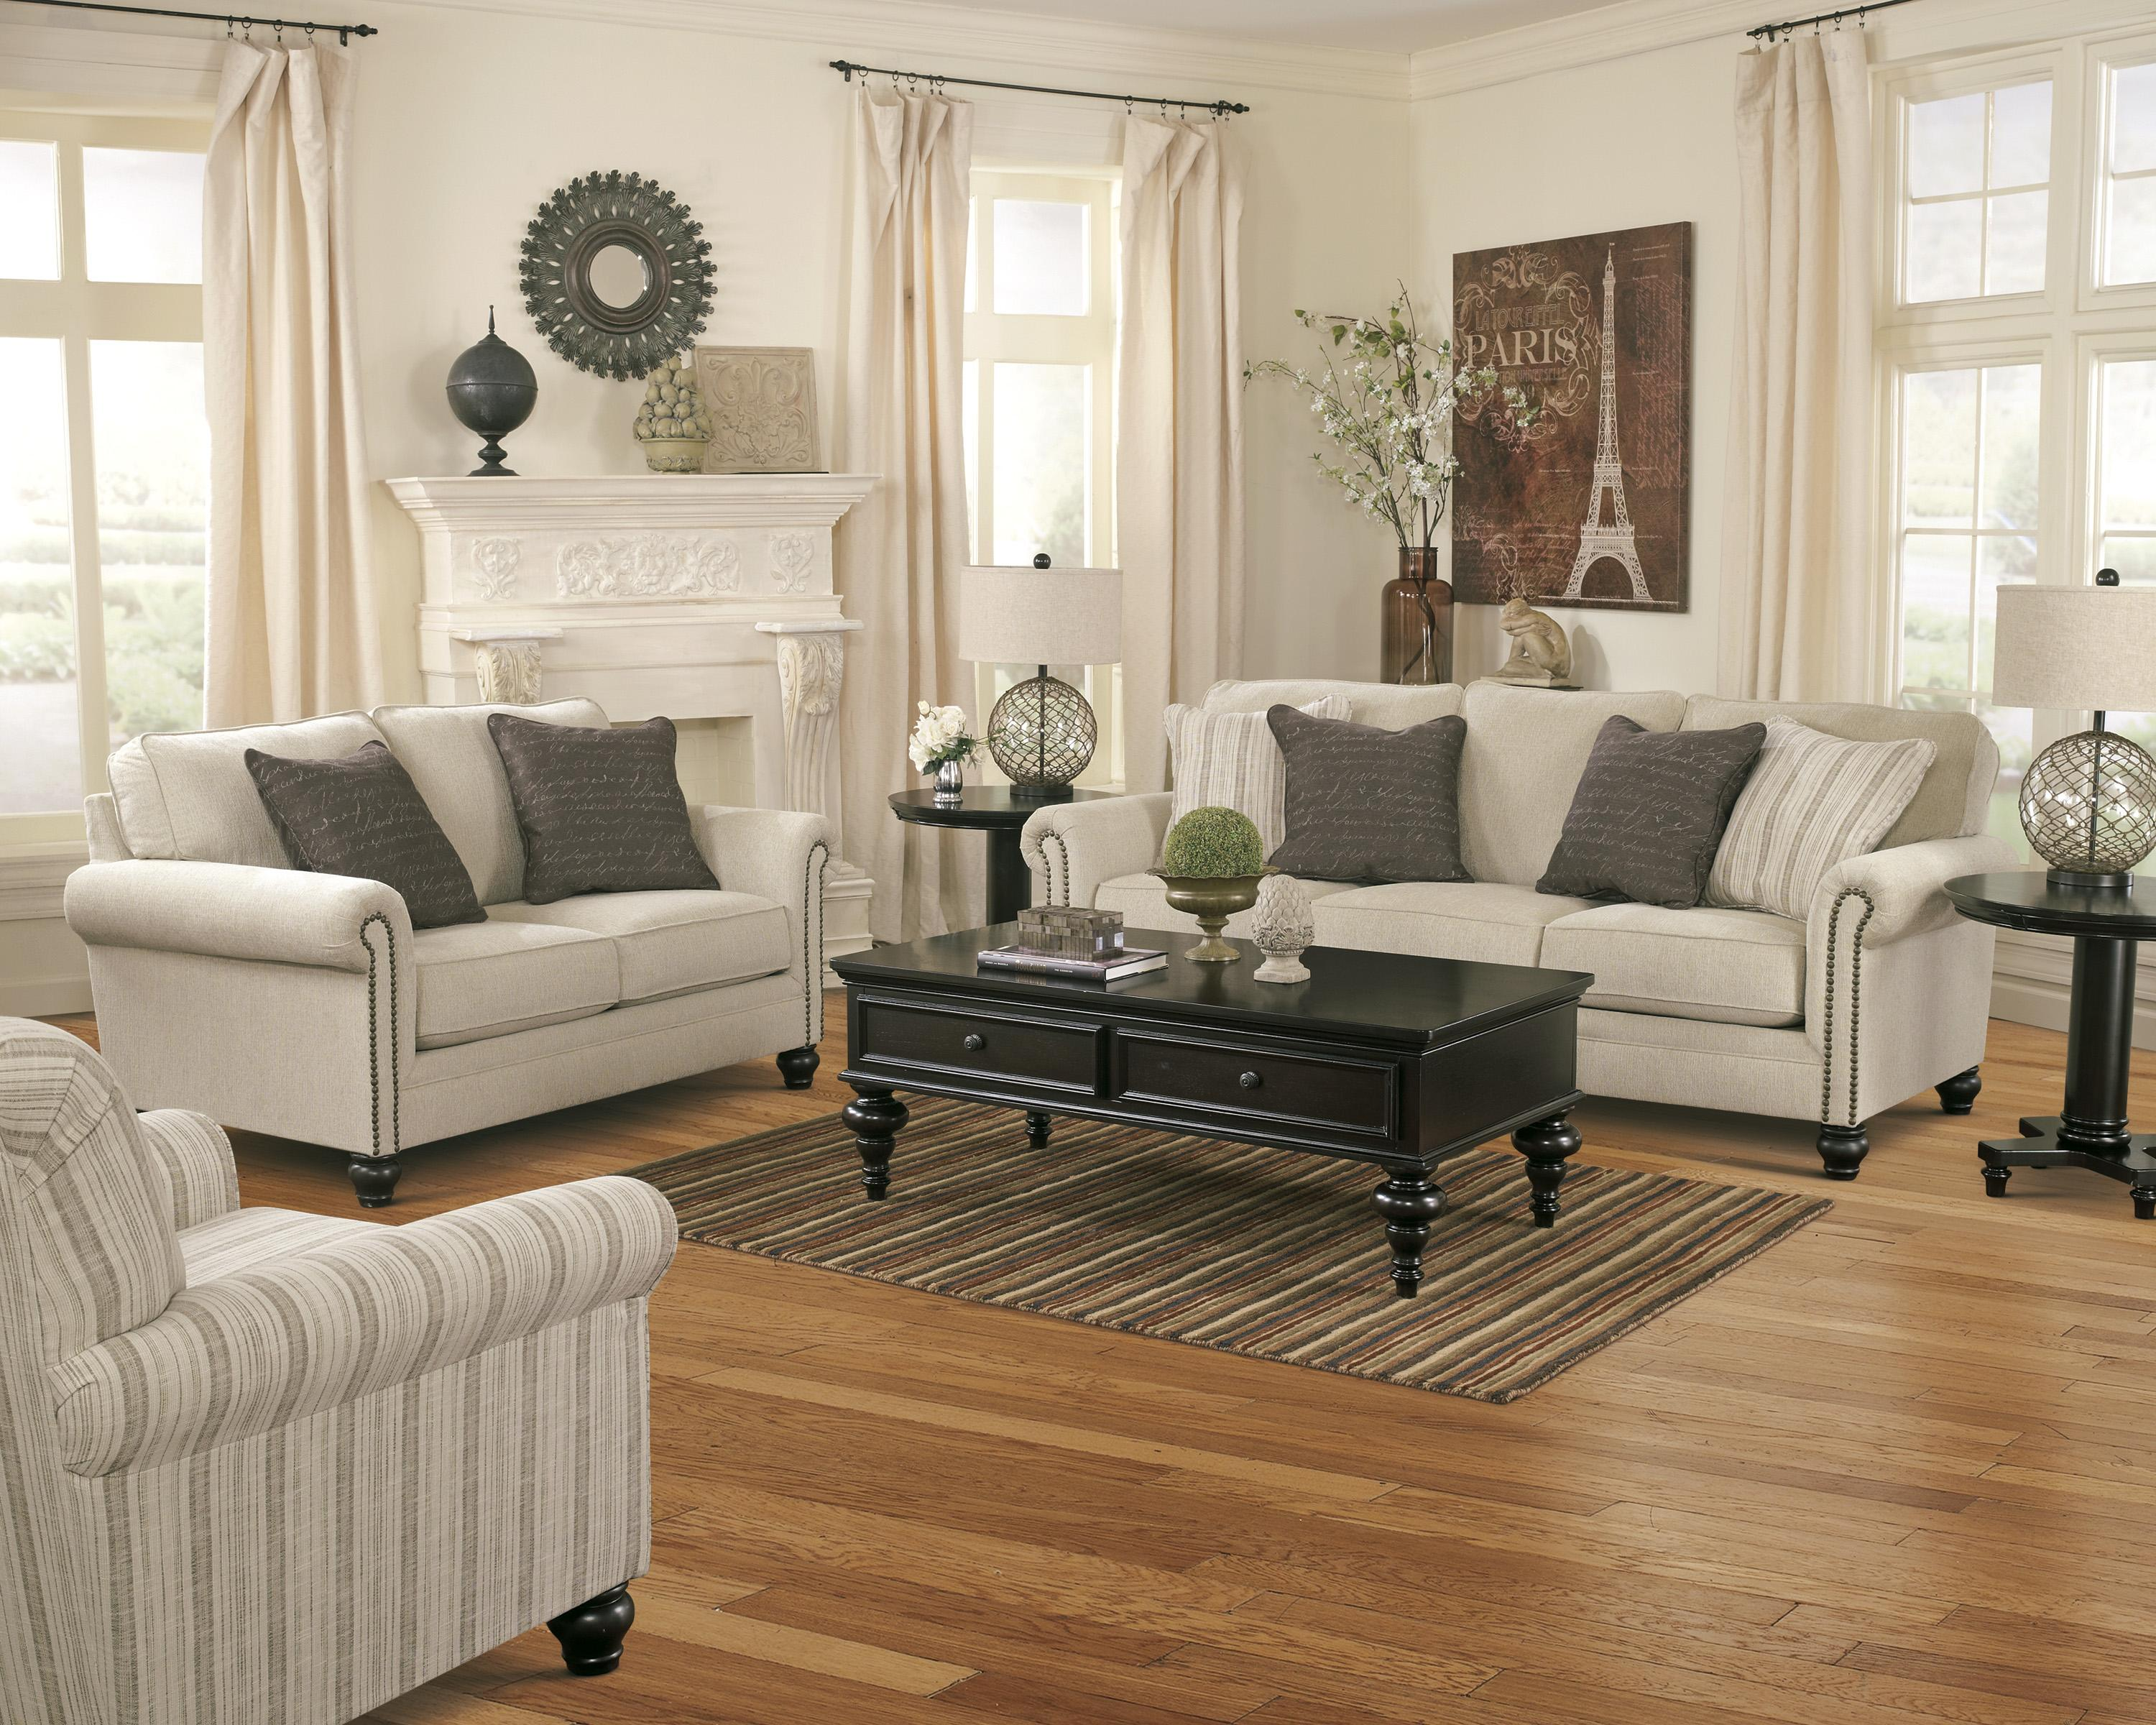 Signature Design by Ashley Milari - Linen Stationary Living Room Group - Item Number: 13000 Living Room Group 4